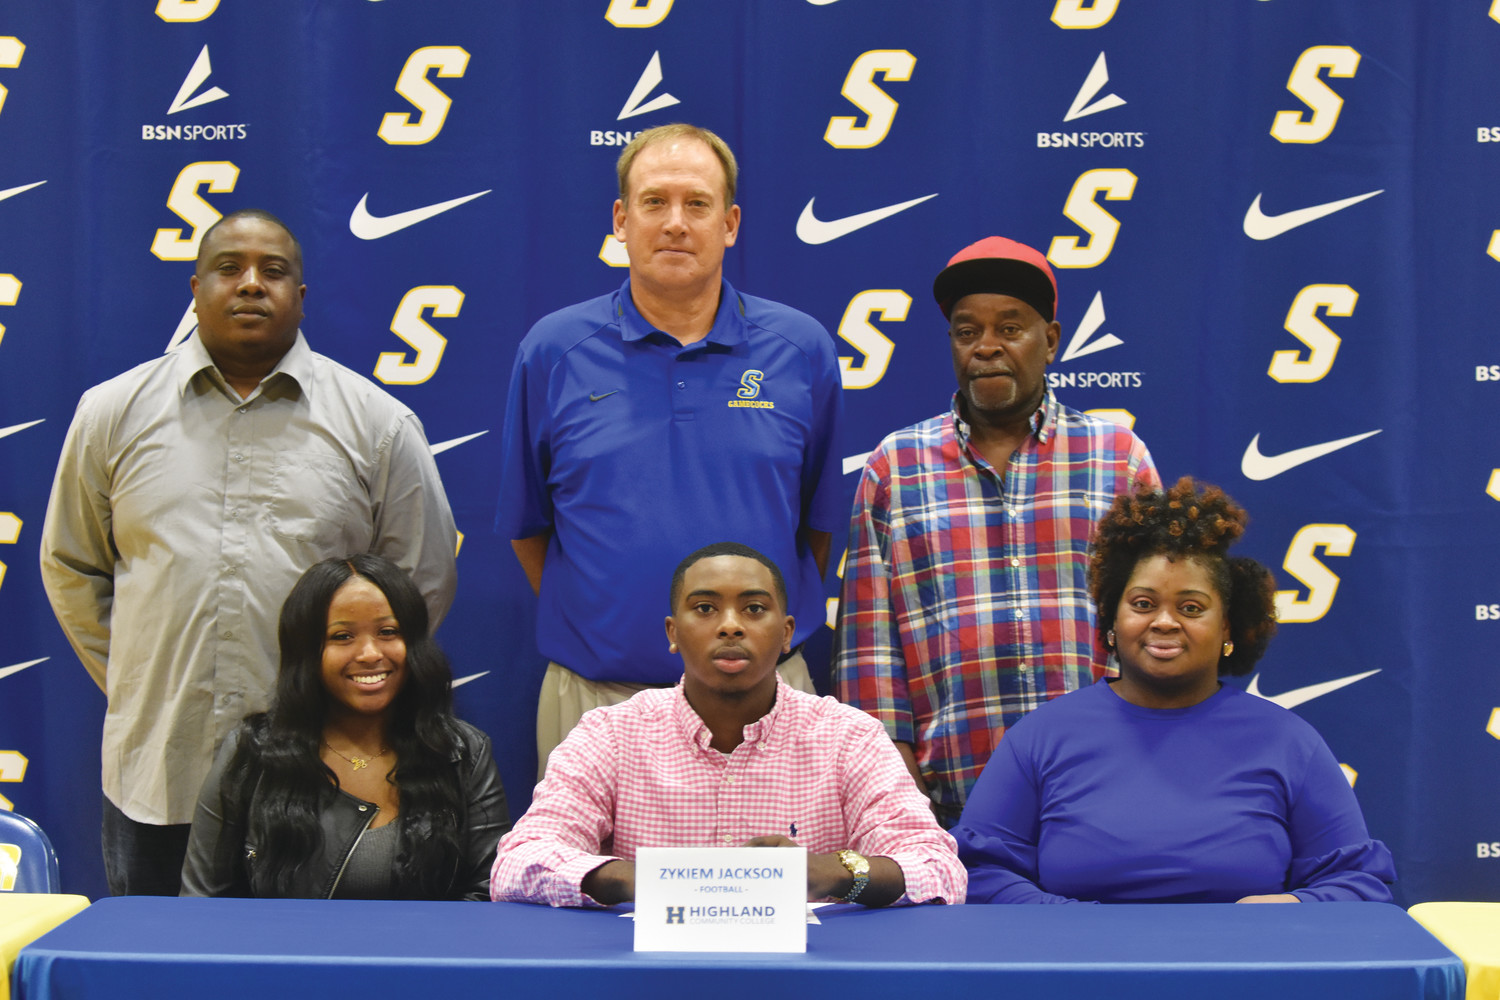 Sumter High quarterback Zykiem Green signed a letter of intent on Wednesday during National Signing Day to play college football at Highland Community College in Highland, Kansas. Green is seen with his mother, Lashawda Jackson (front right), grandfather Willie Prince (back right), Sumter High head coach Mark Barnes (back middle), father Robert Jackson (back left) and girlfriend Jalisa Toney (front left).